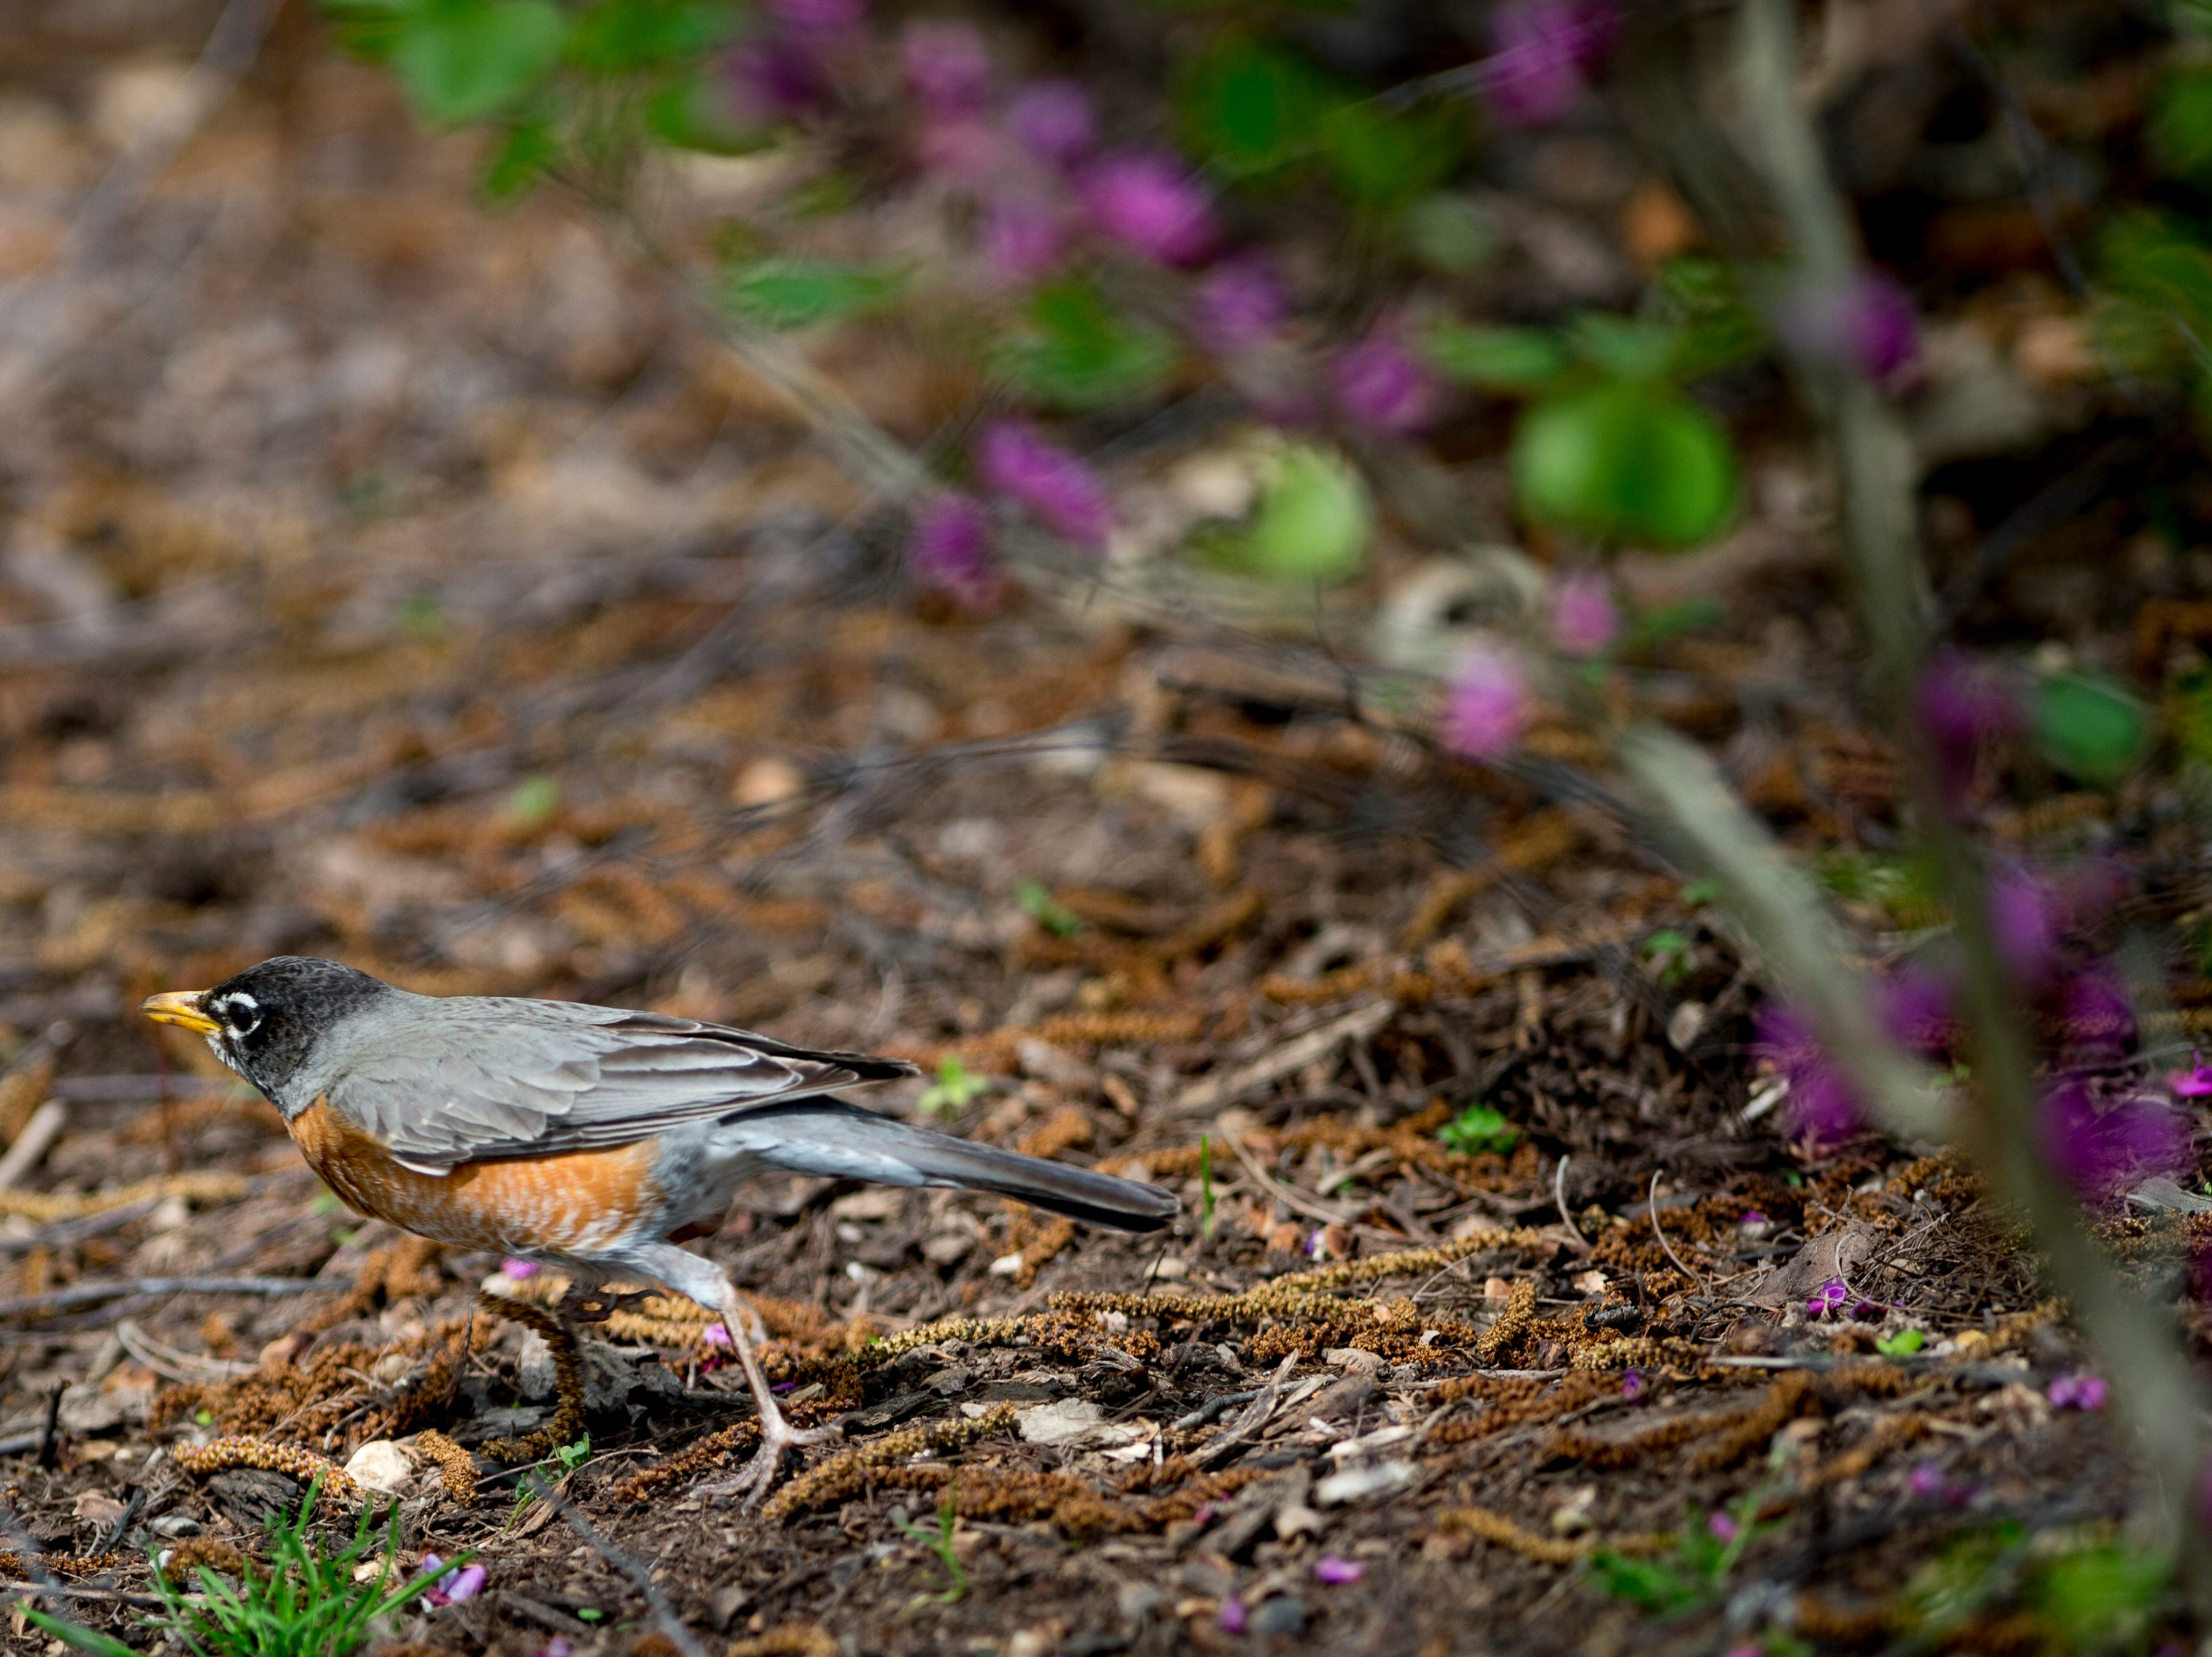 A robin paces through the UT Botanical Gardens in Knoxville, Tennessee on Thursday, April 11, 2019.